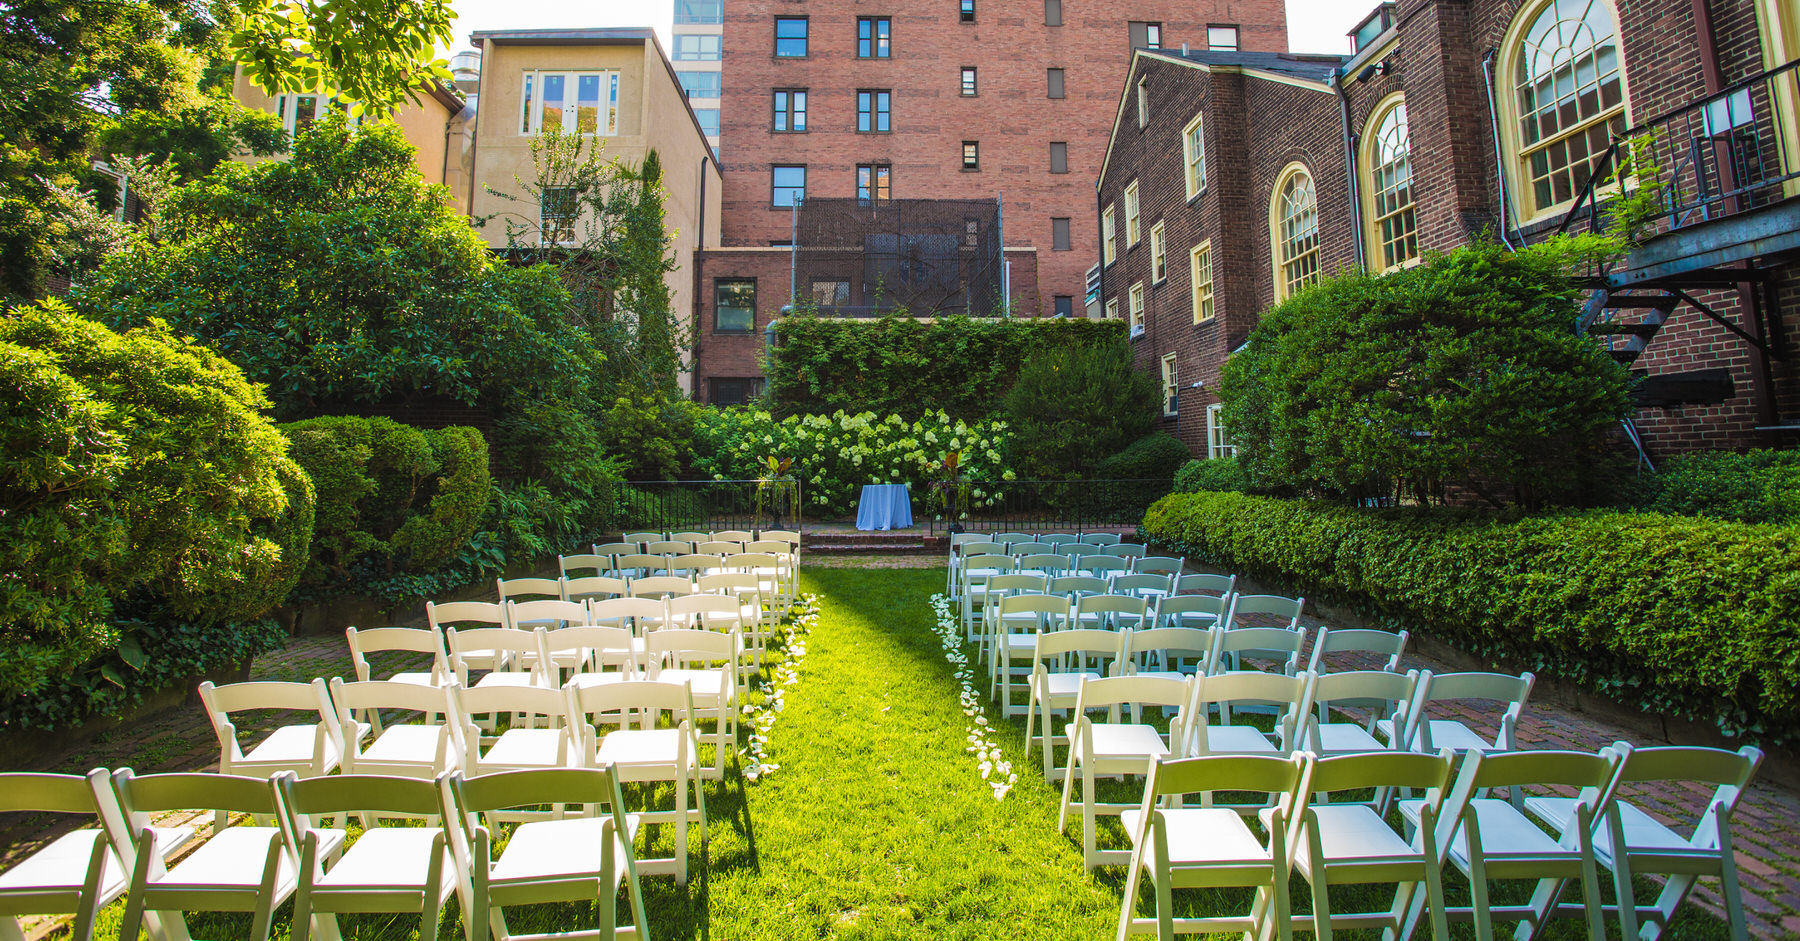 An outdoor ceremony set up at Philadelphia Colonial Dames Society by Washington DC Wedding Photographer Adam Mason